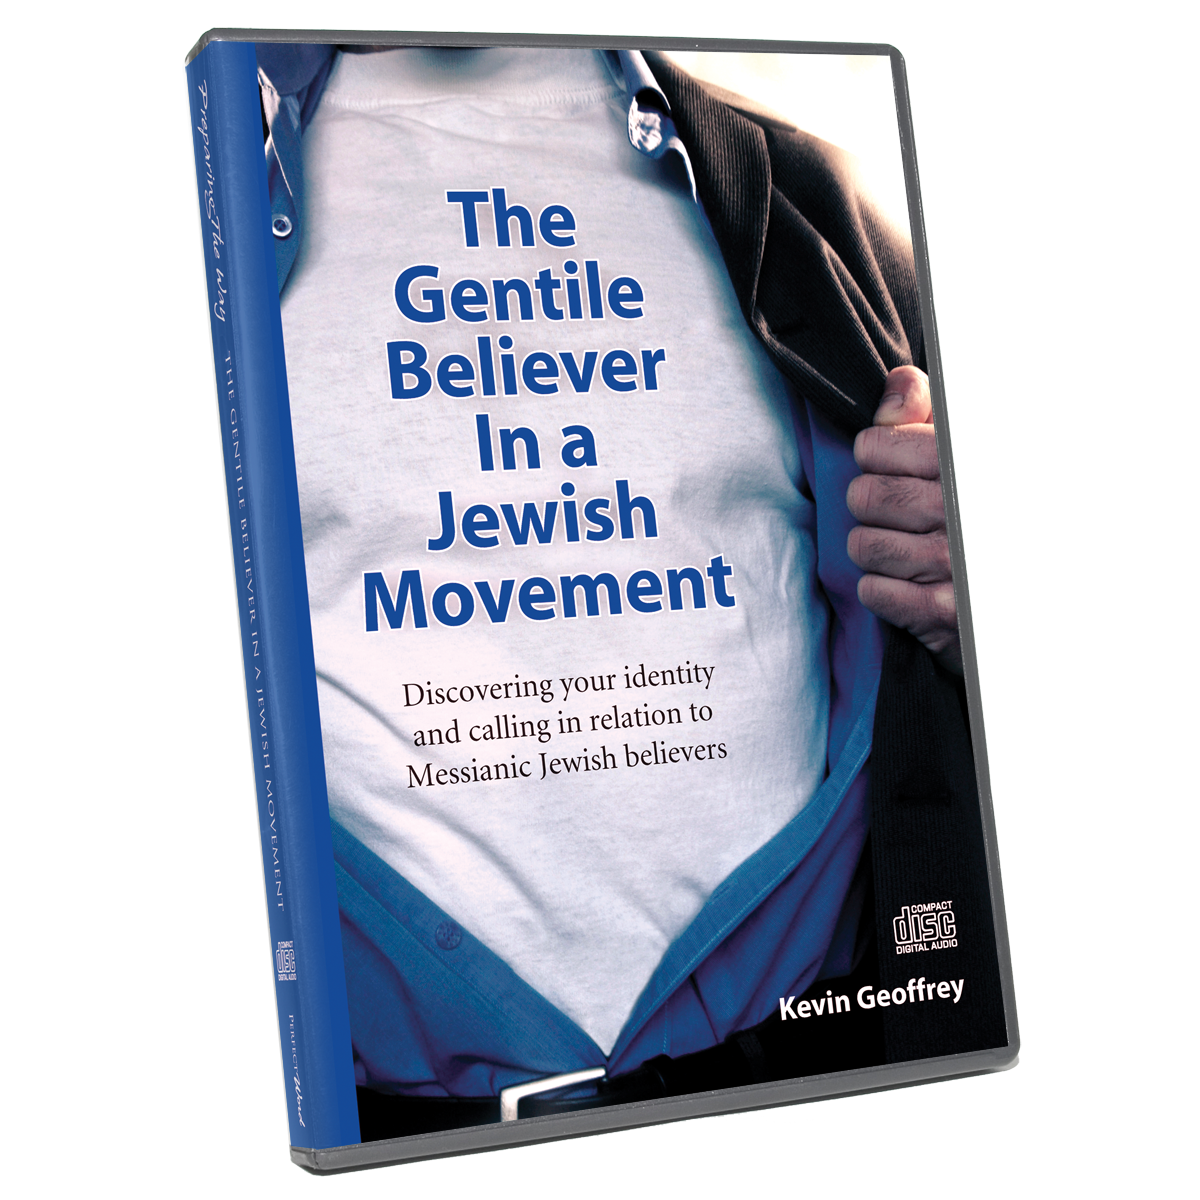 Kevinbelieberz: The Gentile Believer In A Jewish Movement